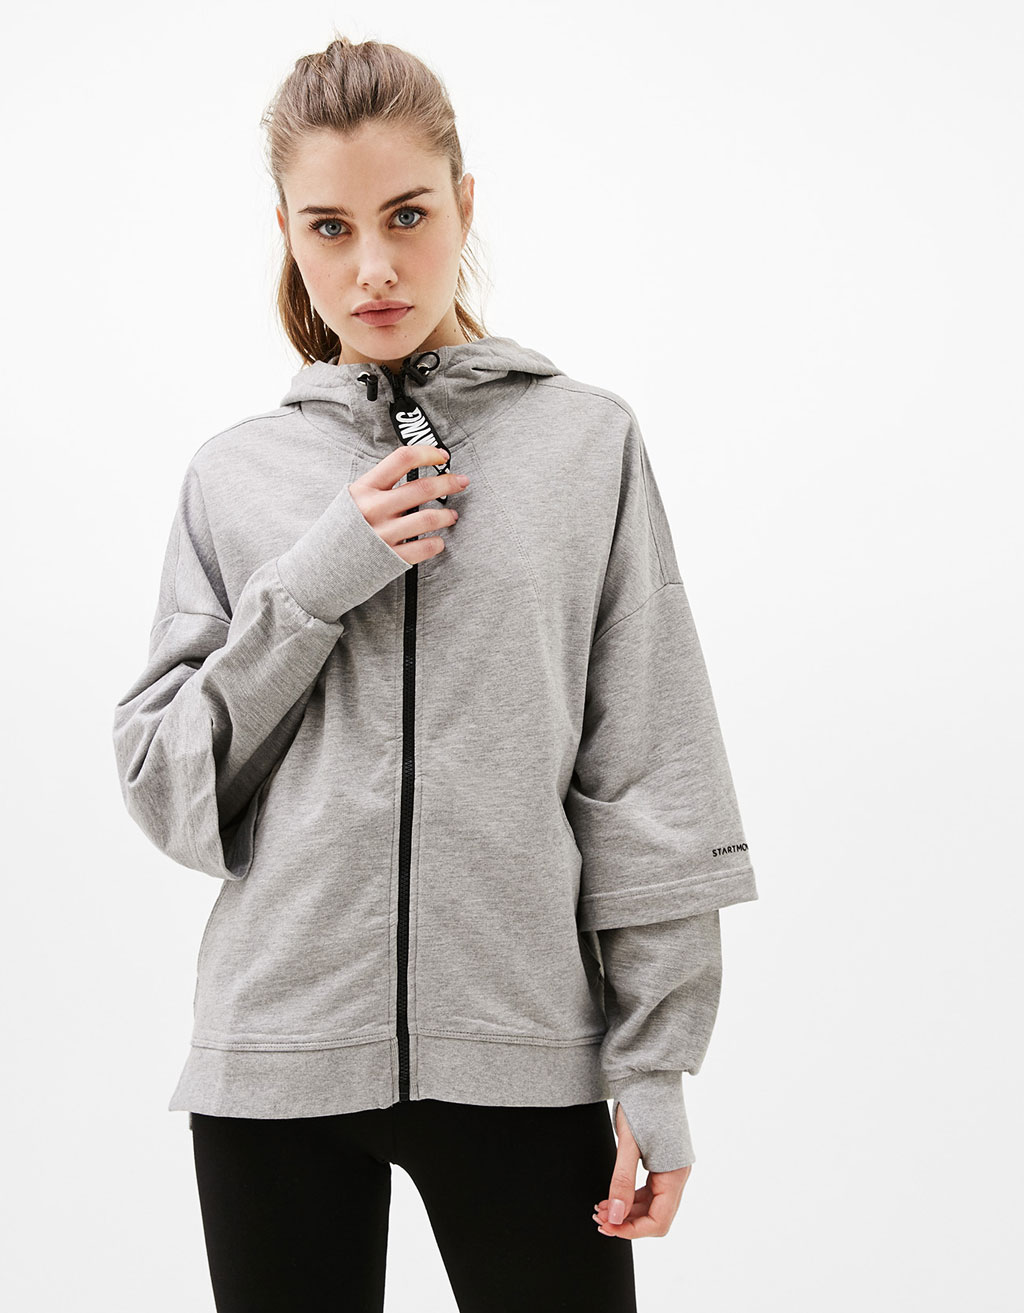 Hooded sports sweatshirt with double sleeve detail